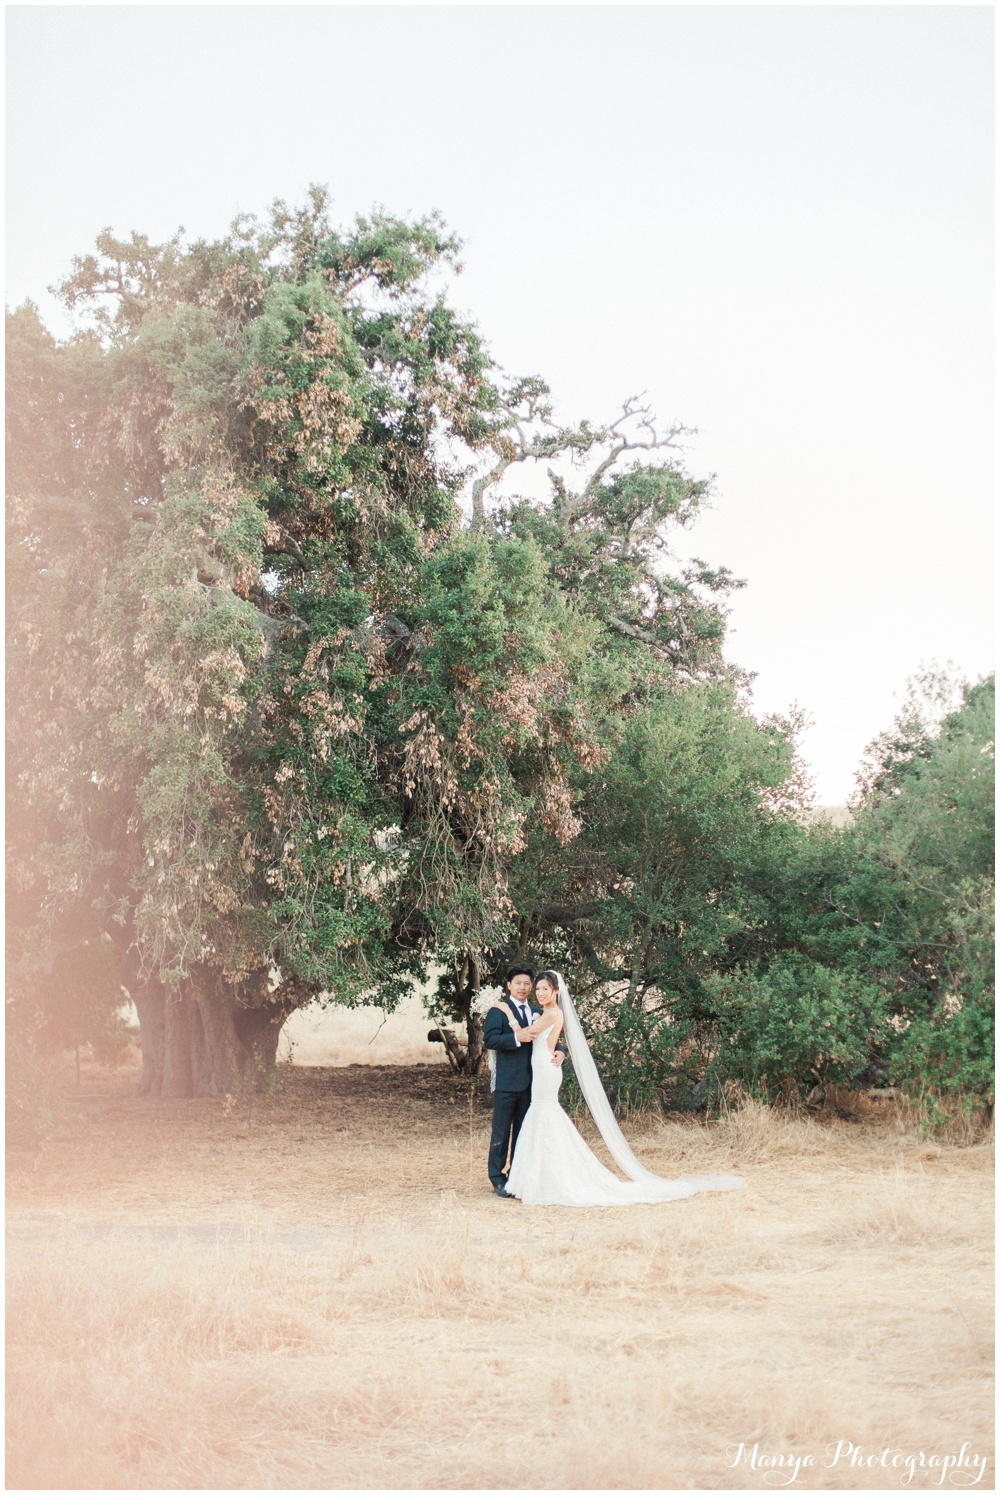 MandM_Wedding_Orange_County_Wedding_Photographer_Manya_Photography_Carbon_Thomas_F_Riley_Wilderness_Park__0045